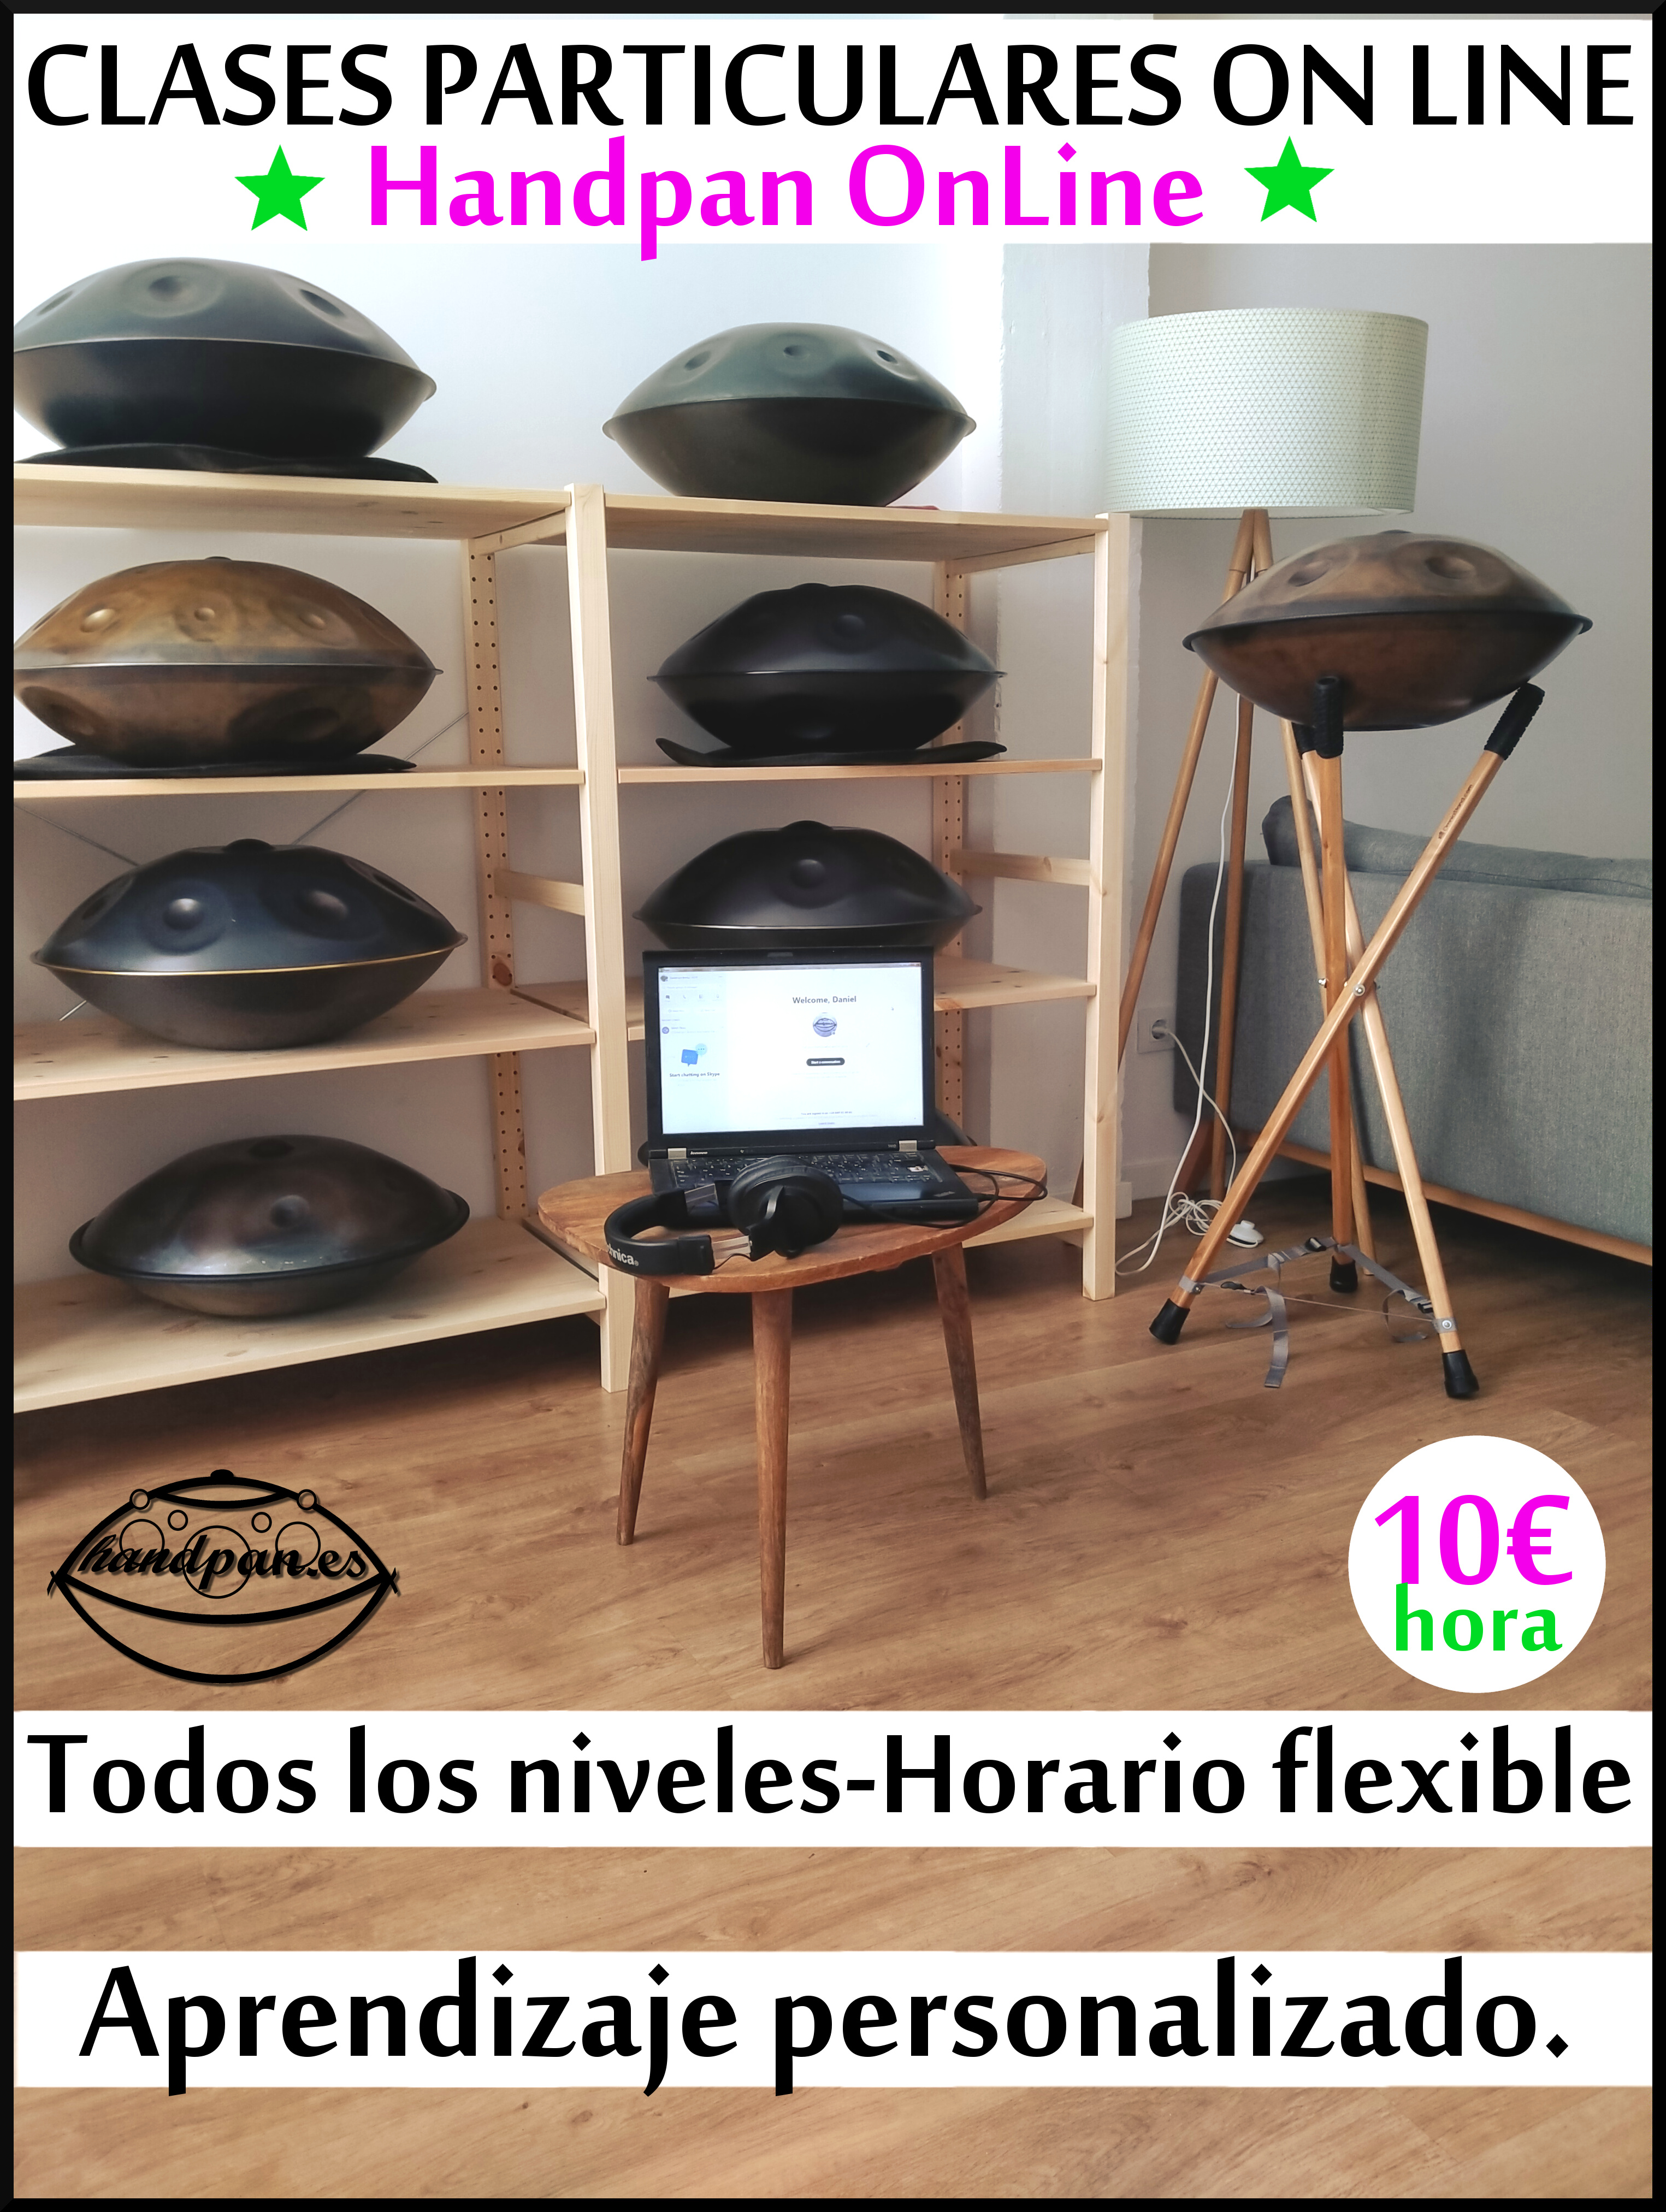 Clases particulares de Handpan on line